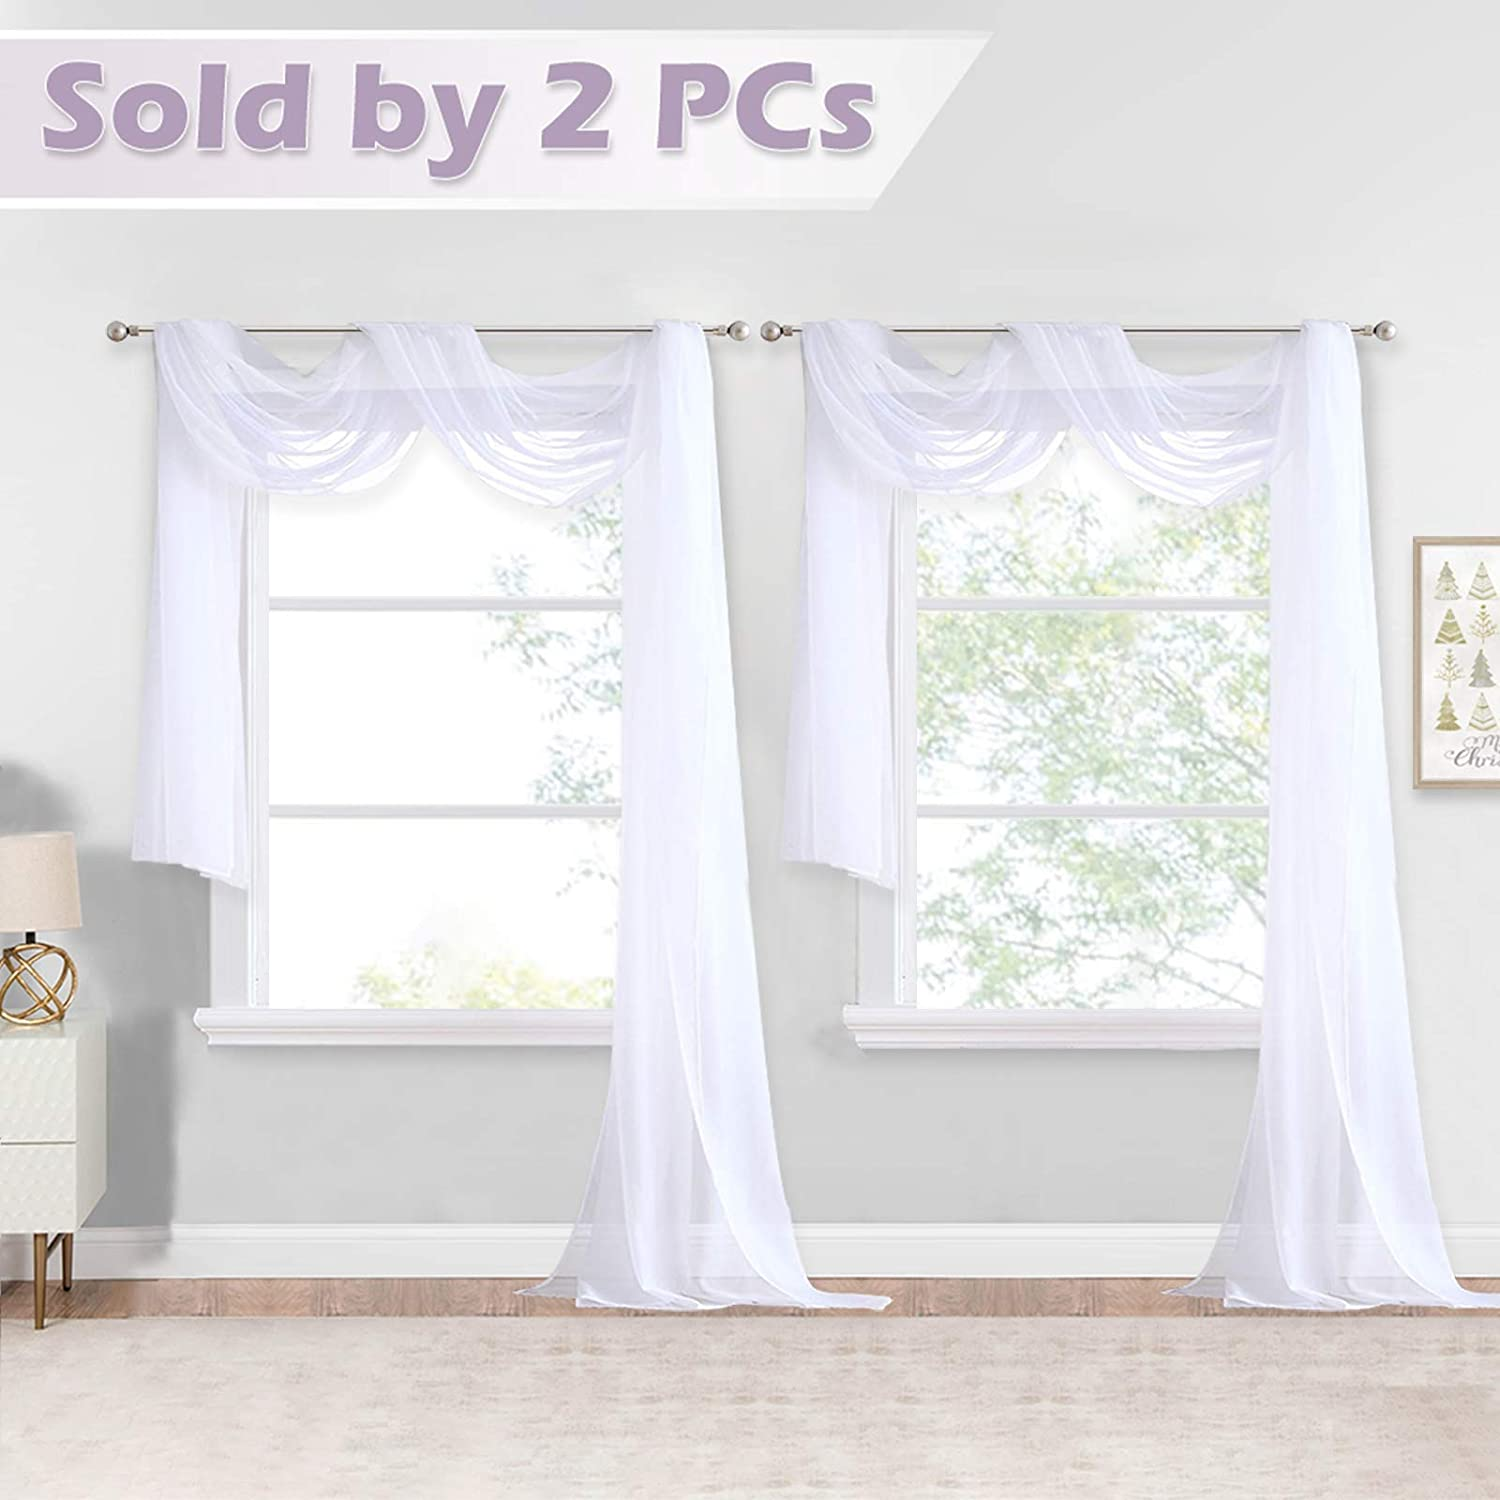 NICETOWN White Sheer Window Scarfs 216 inch Extra Long, Soft Voile Textured Bed Canopy Scarf Curtains for Event Designs / Home Decor, 60 inches Wide, Set of 2